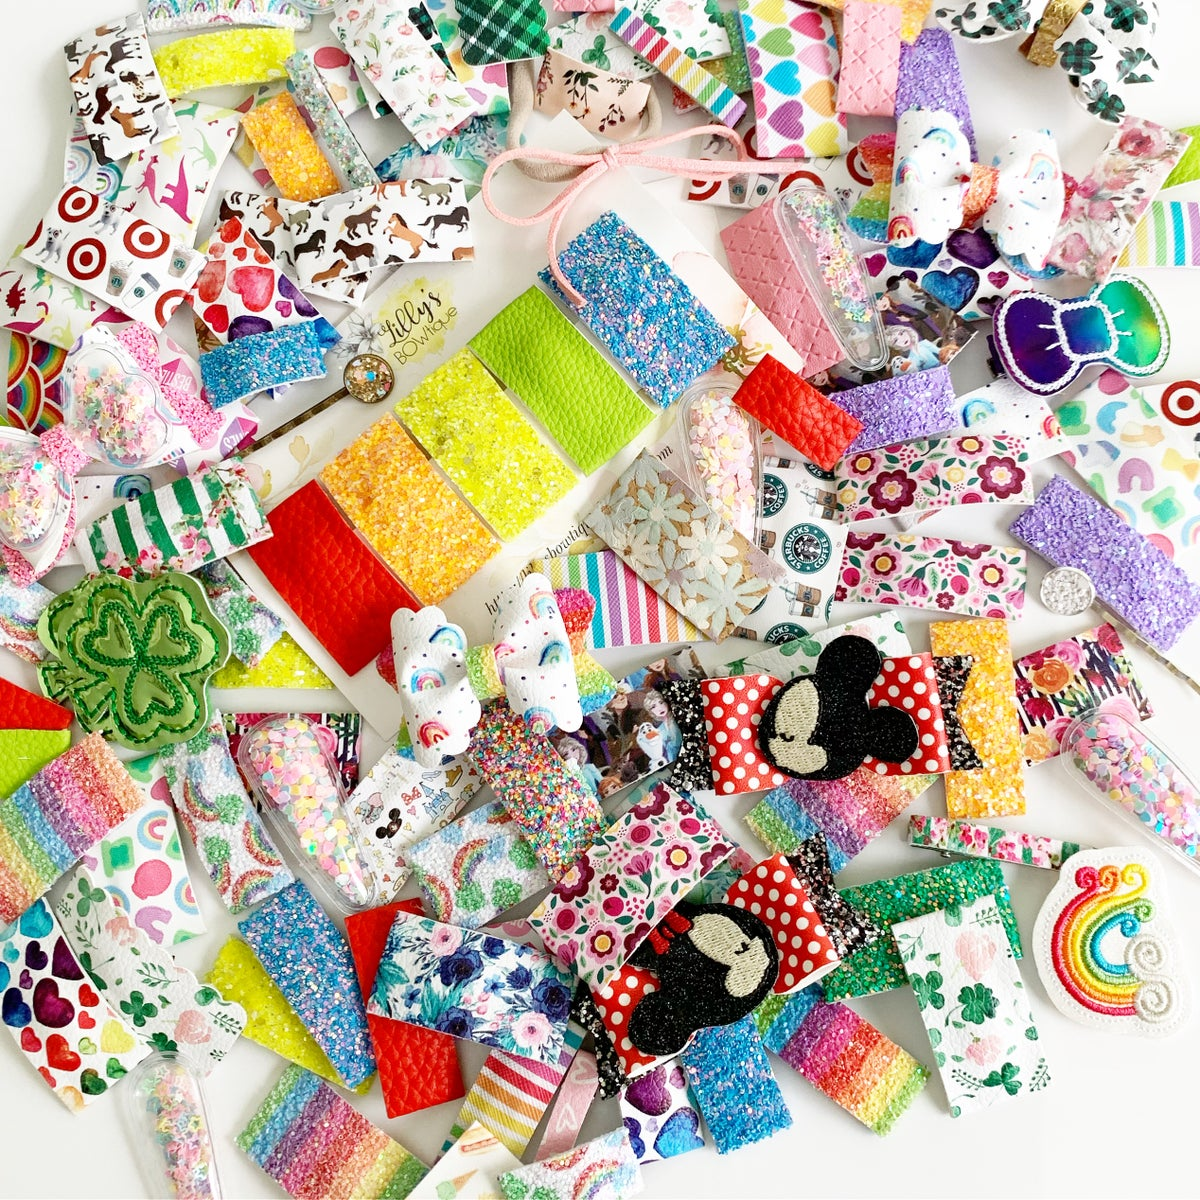 Image of Spring cleaning grab bag